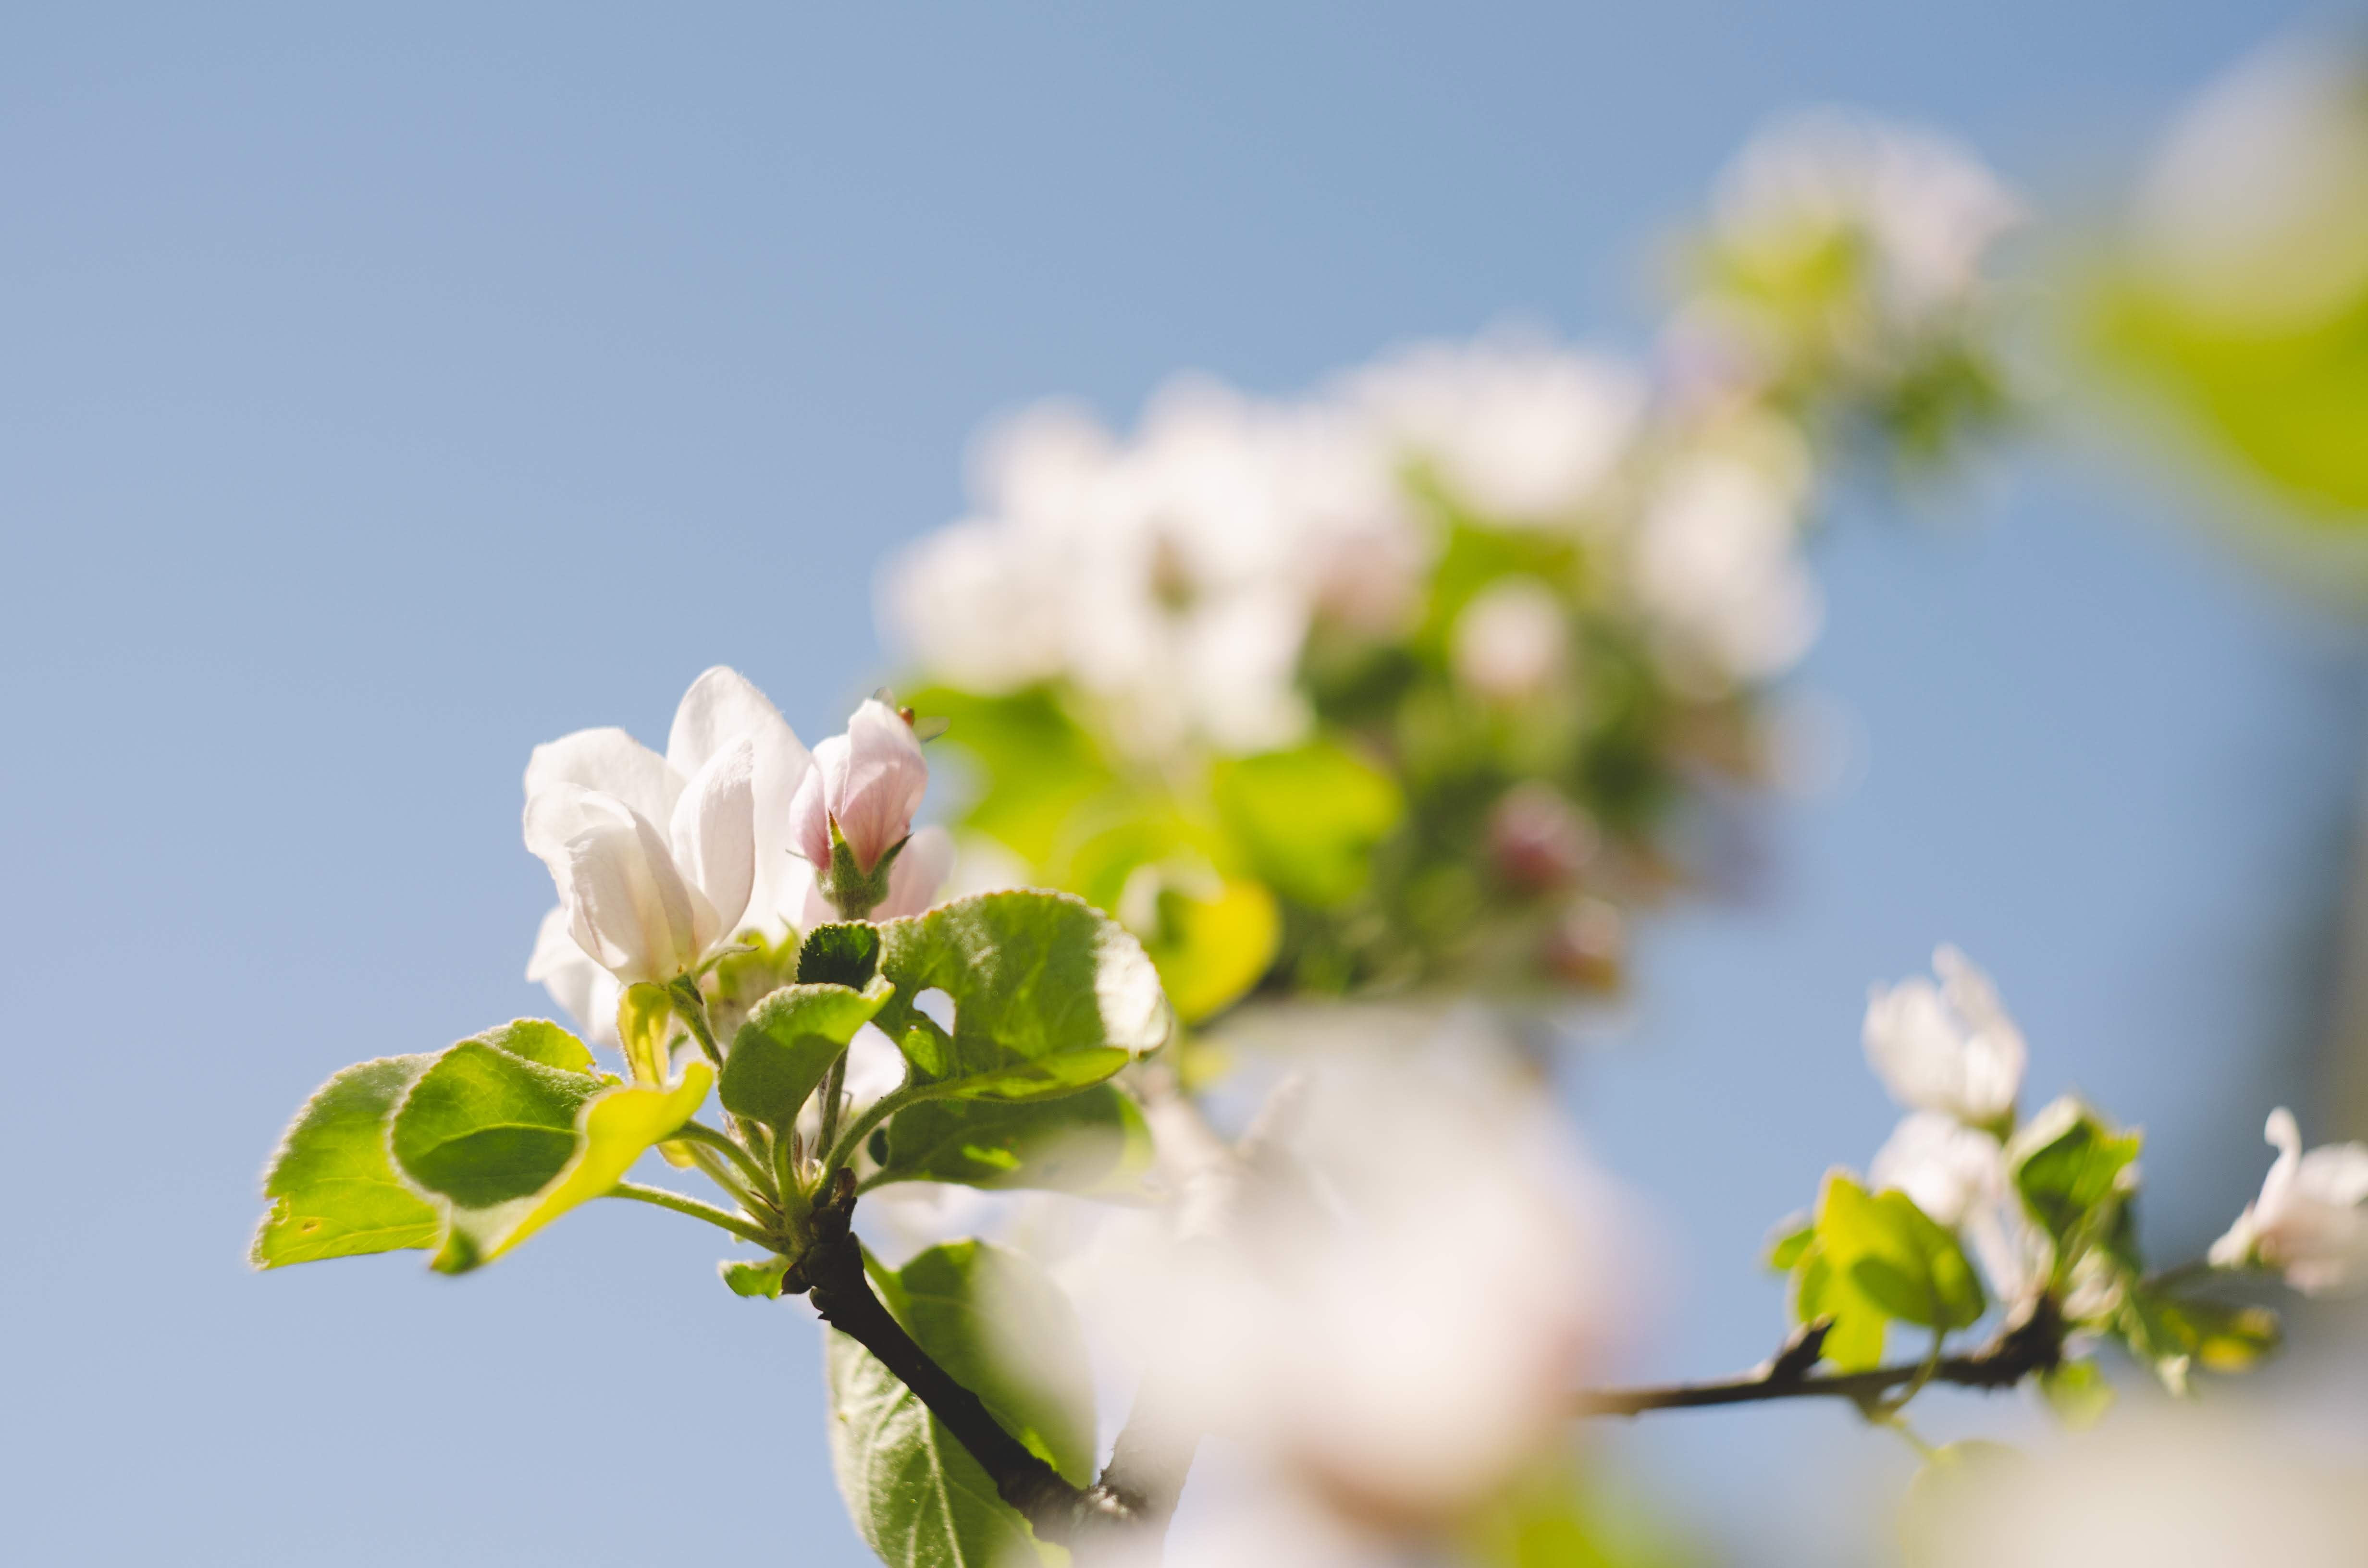 selective focus photography of white petaled flowers under clear blue sky